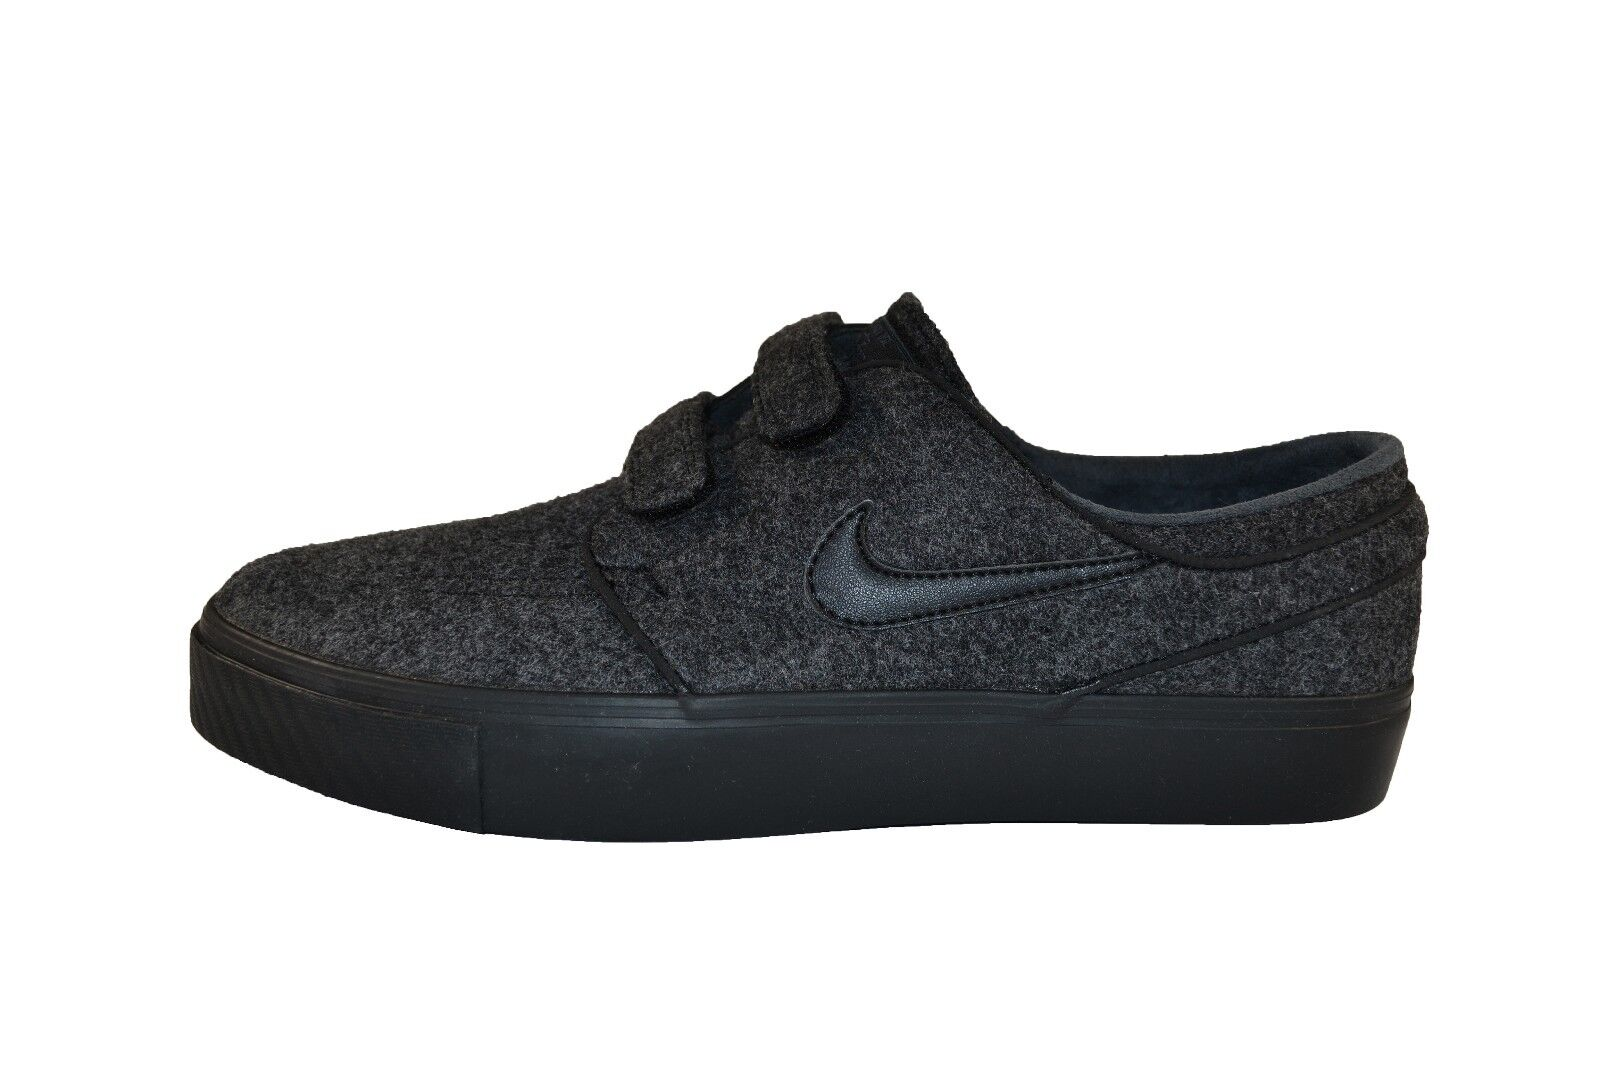 Nike STEFAN JANOSKI AC RS Black Anthracite Skate Discounted Price reduction  Men's Shoes